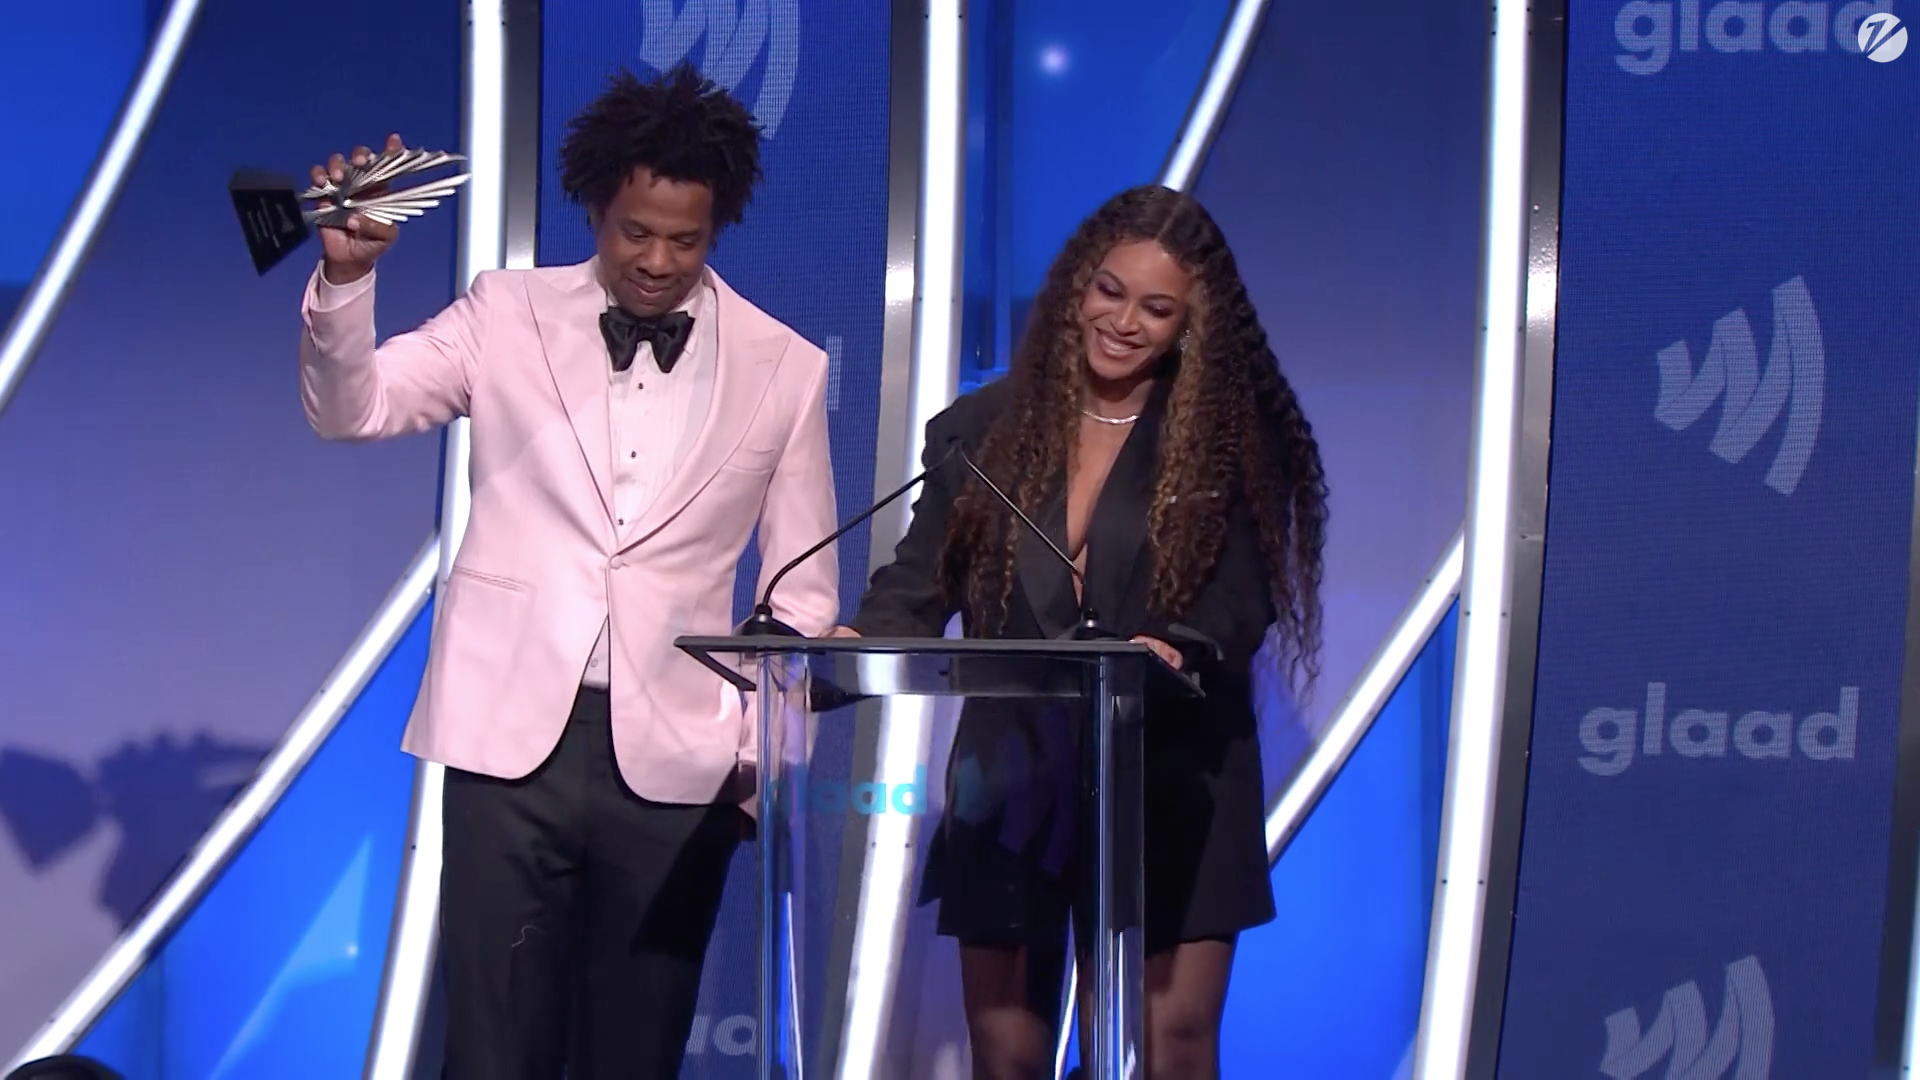 Jay-Z accepts a GLAAD award in a pink dinner jacket.